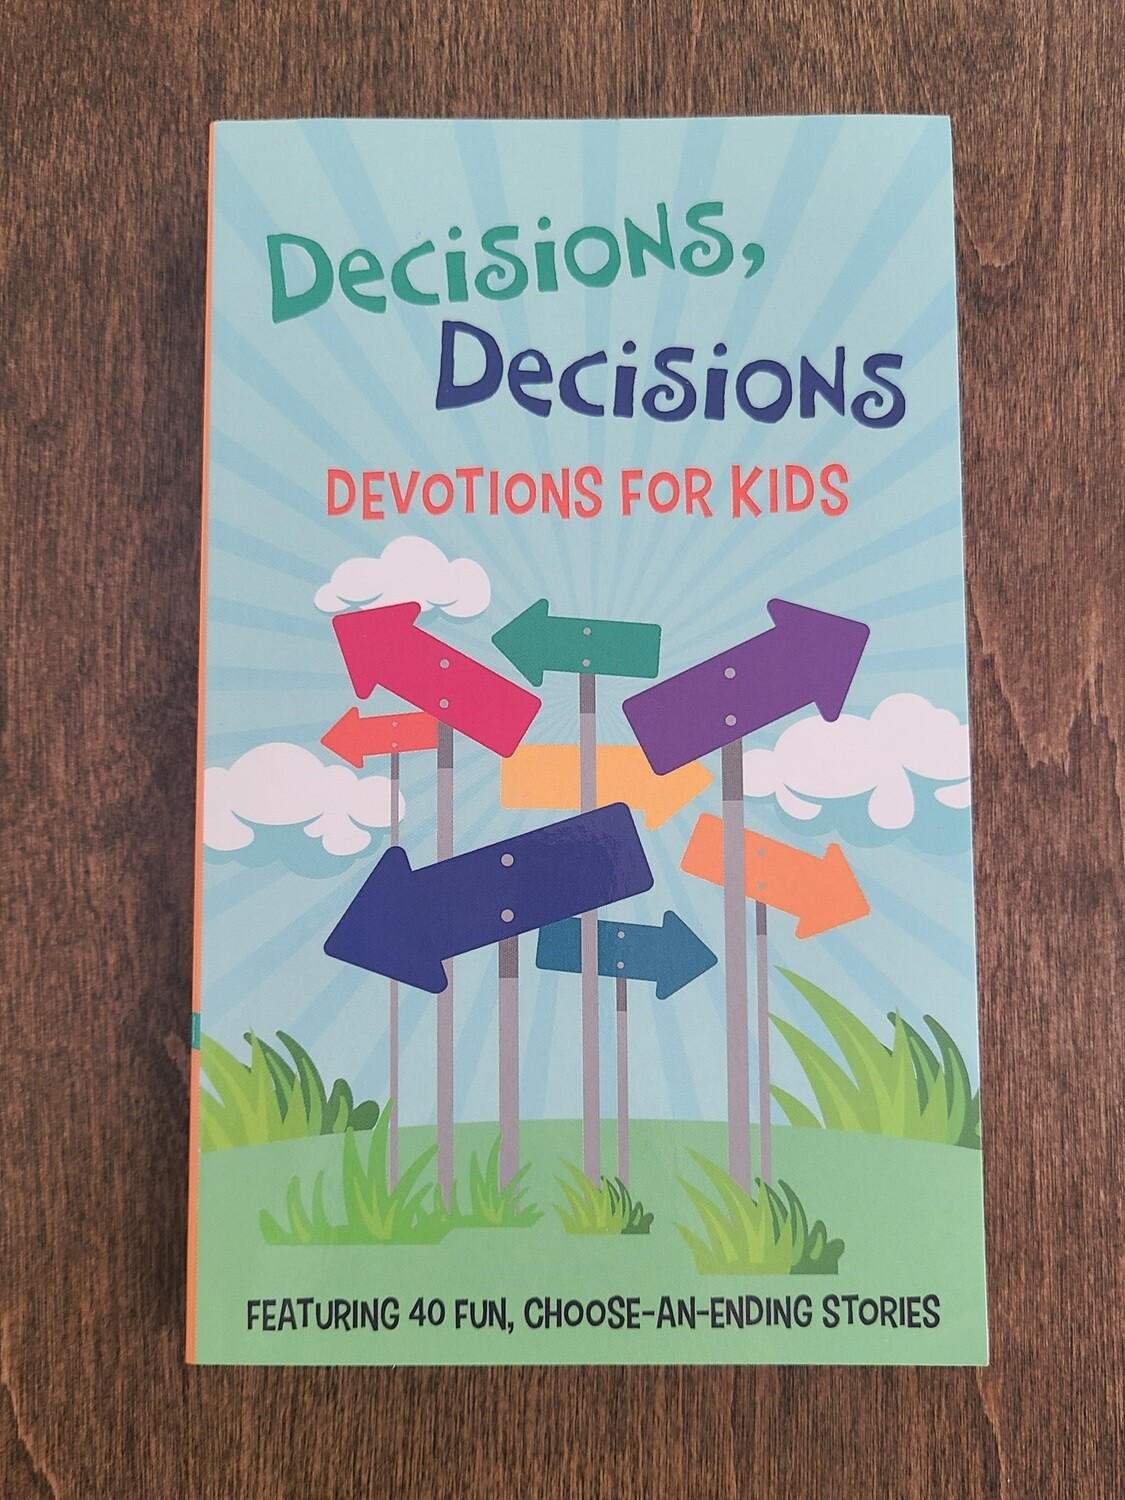 Decisions, Decisions Devotions for Kids by Trisha White Priebe